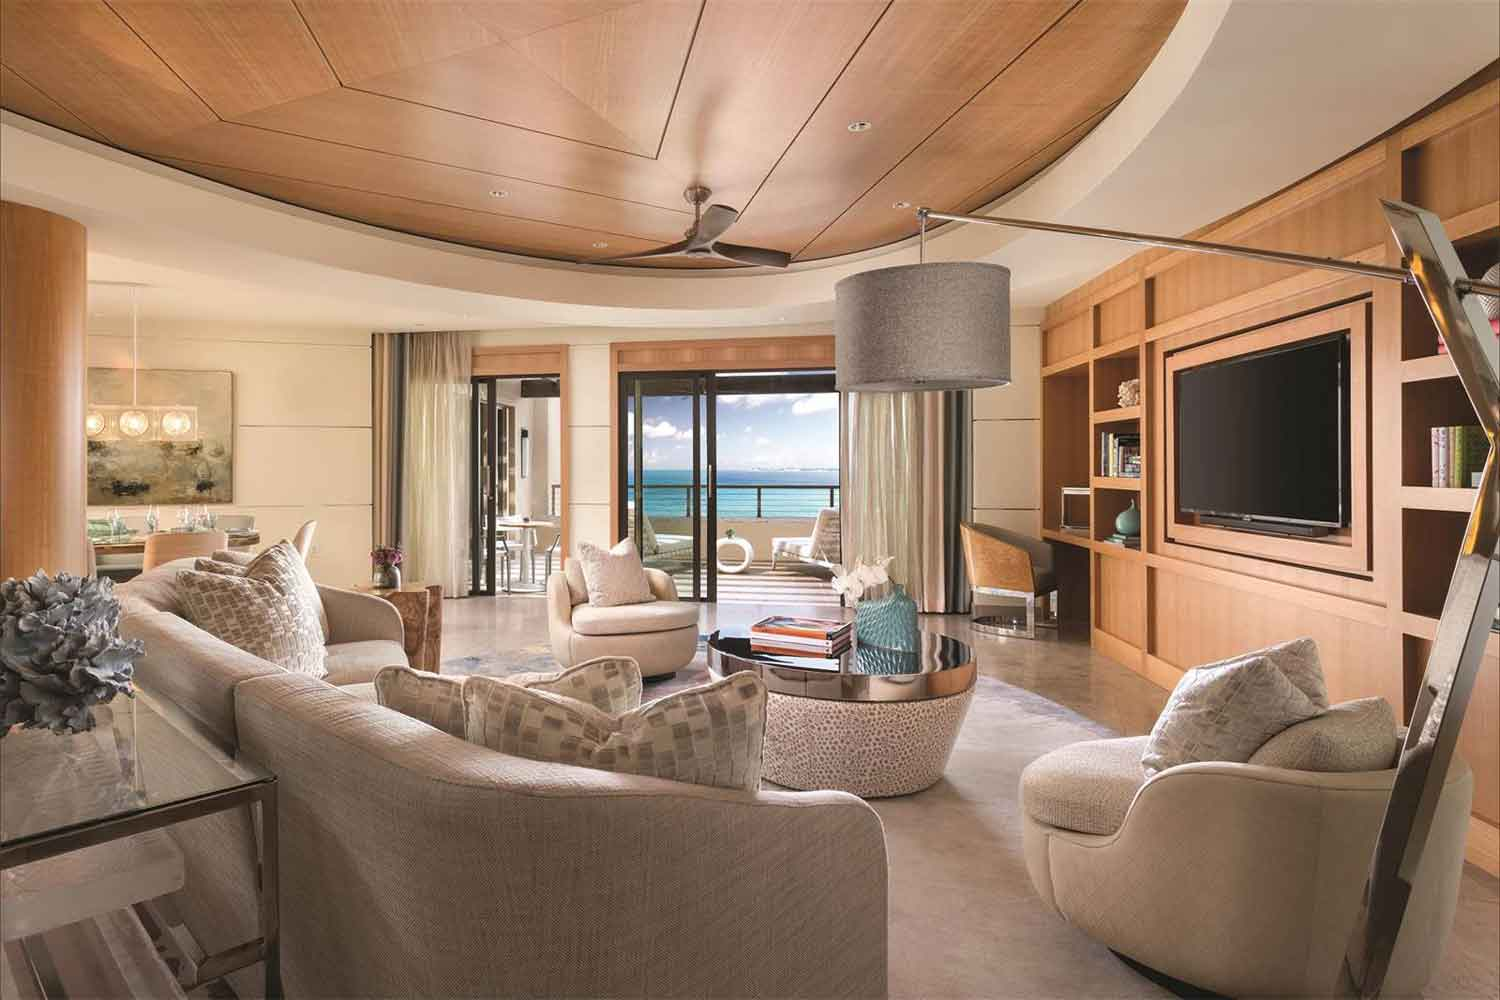 <b>Seven Mile Beach, Cayman Islands</b><br/><i>2 Bedrooms, 3,075 sq. ft.</i><br/>Penthouse with ocean views of Seven Mile Beach